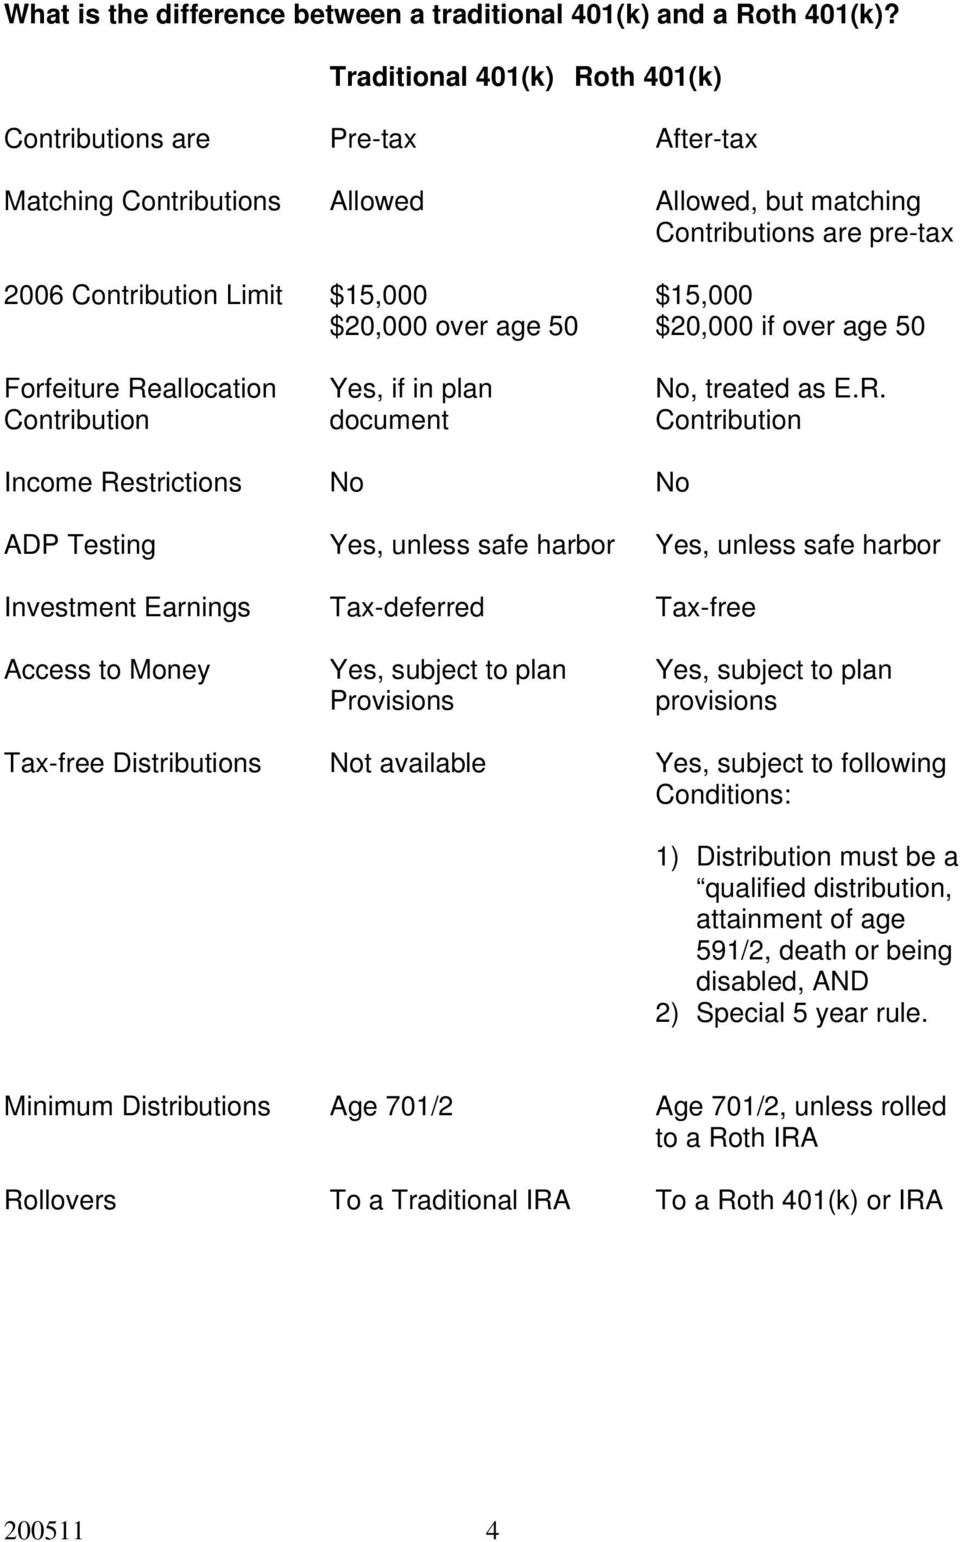 age 50 $20,000 if over age 50 Forfeiture Re